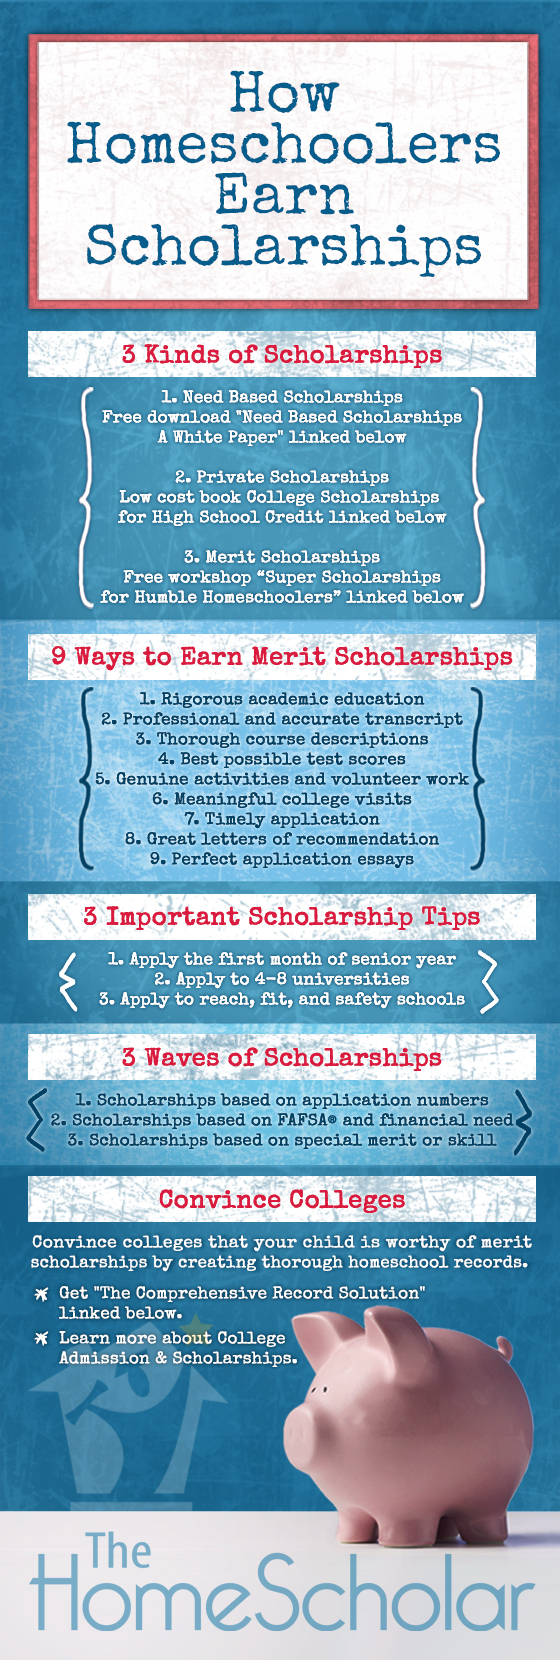 How Homeschoolers Earn Scholarships | Newsletter Articles | HomeScholar